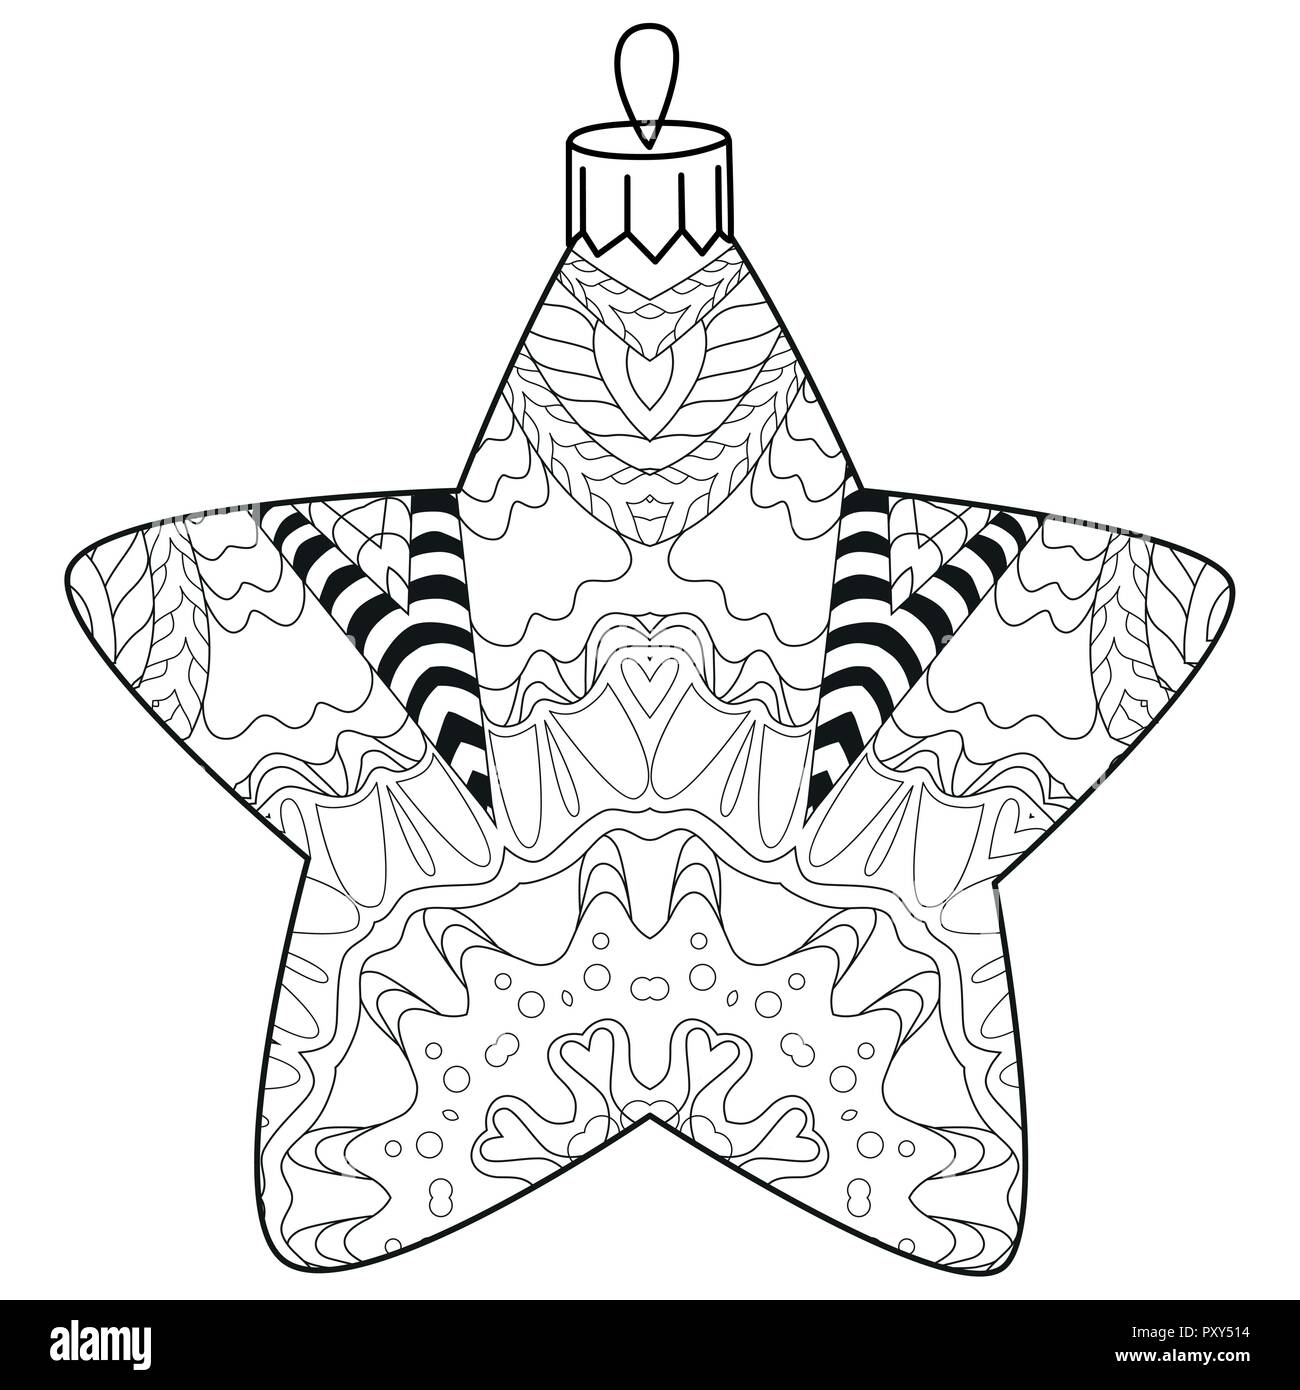 - Christmas Decorations Zentangle Styled With Clean Lines For